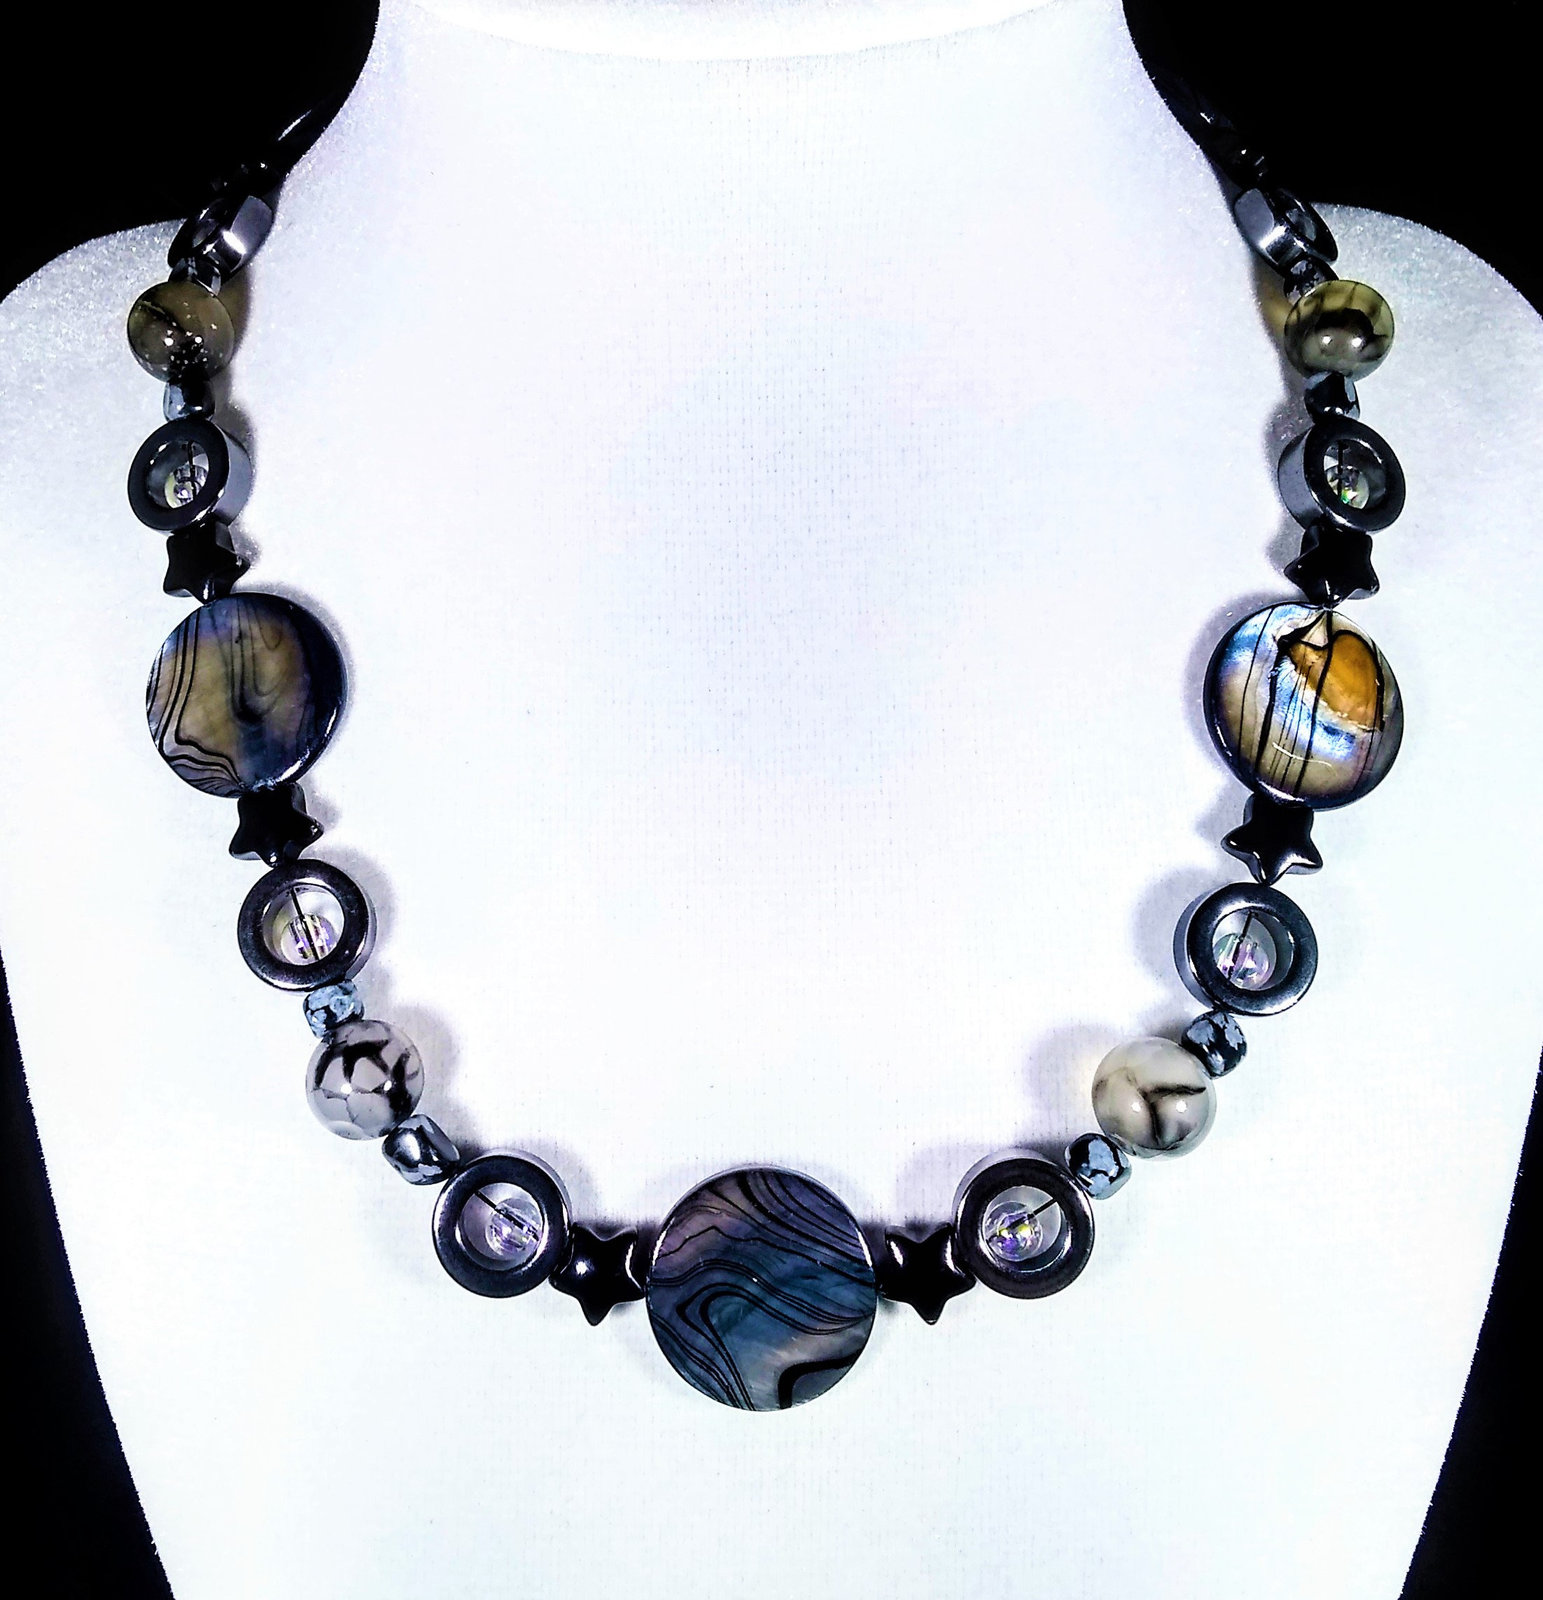 "Primary image for 17 1/2"" Genuine hematite, snowflake obsidian, fire agate, shell & artglass bead"